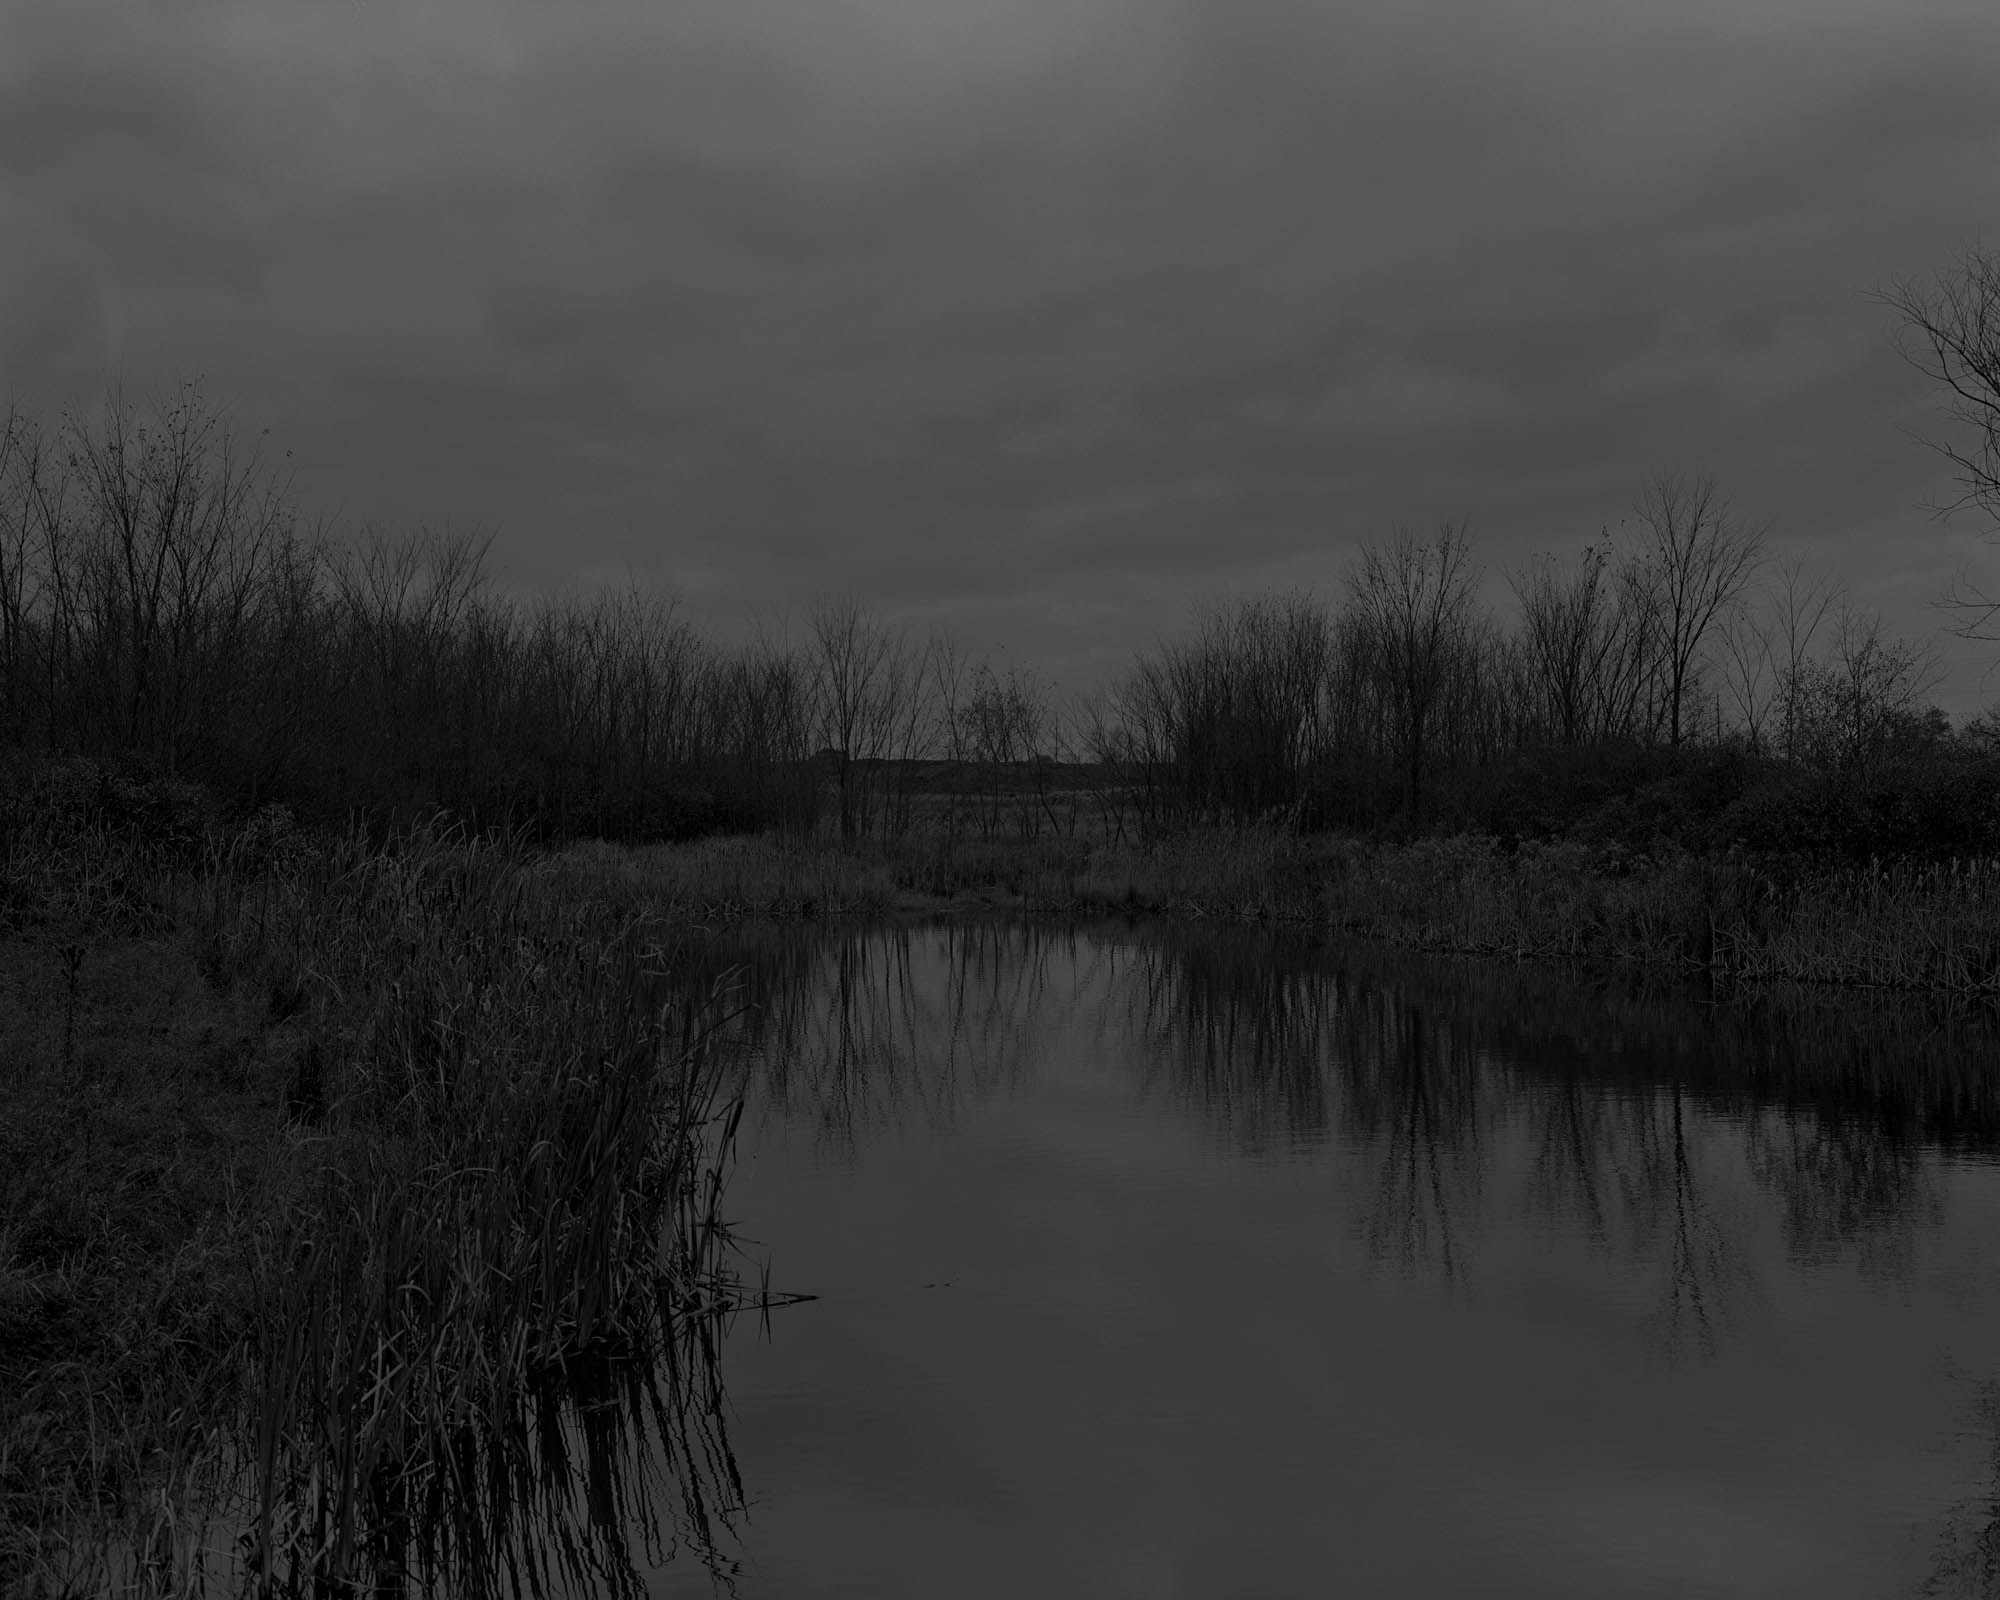 A black and white photo of a marsh.